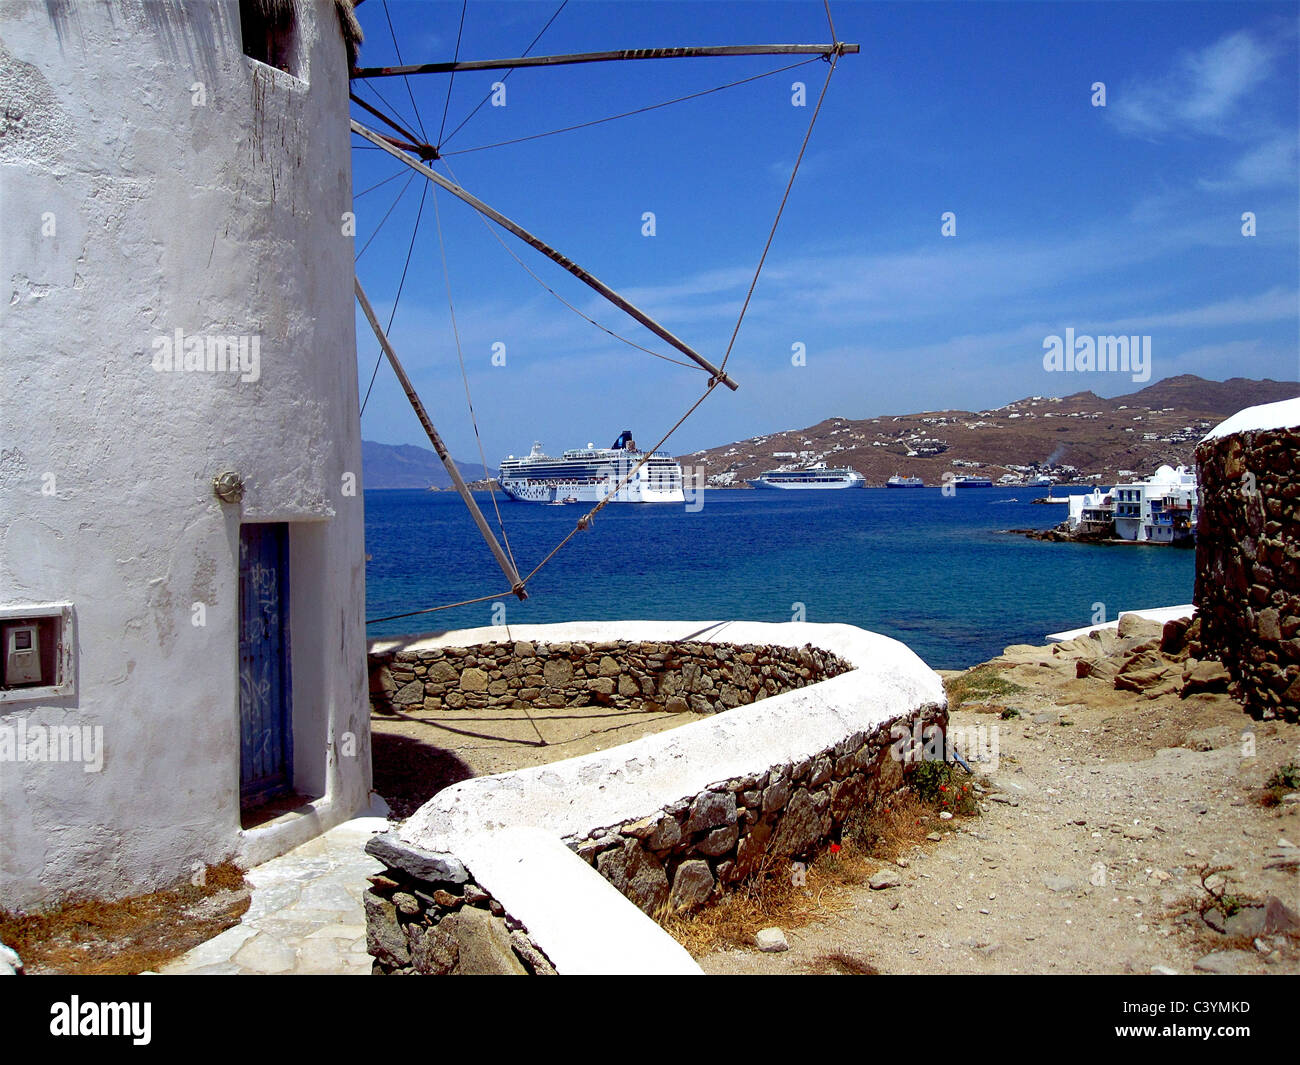 Europe, Greece, Greek Islands, Mykonos, aegean mediterranean, Cyclades Chora, white, painted, stucco, houses, architecture, - Stock Image